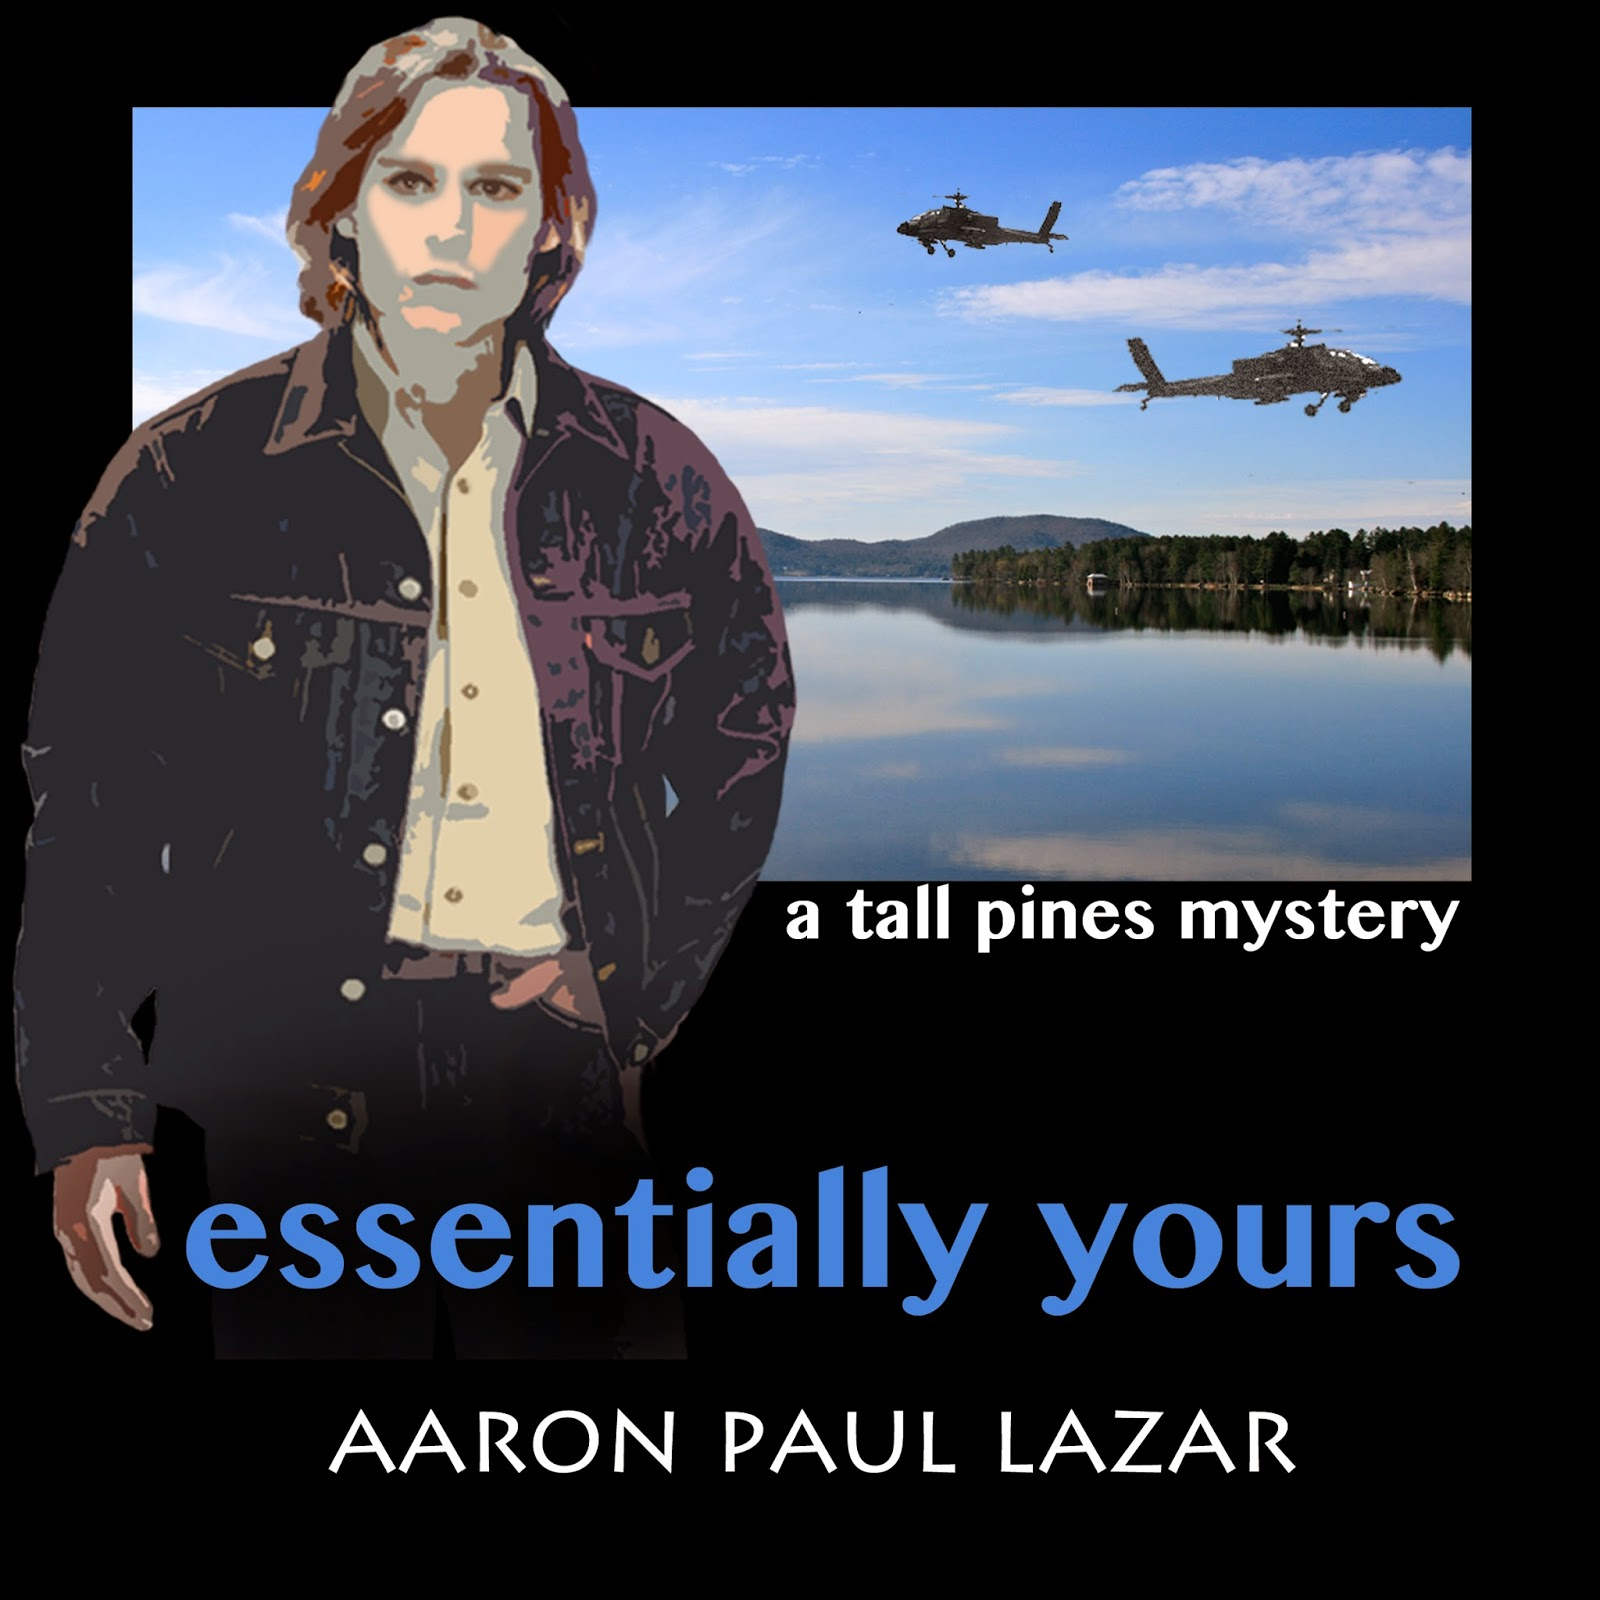 http://www.amazon.com/Essentially-Yours-Aaron-Paul-Lazar-ebook/dp/B007KPBBP6/ref=pd_sim_kstore_2?ie=UTF8&refRID=0QG6XCM0A12P5SC03TE0